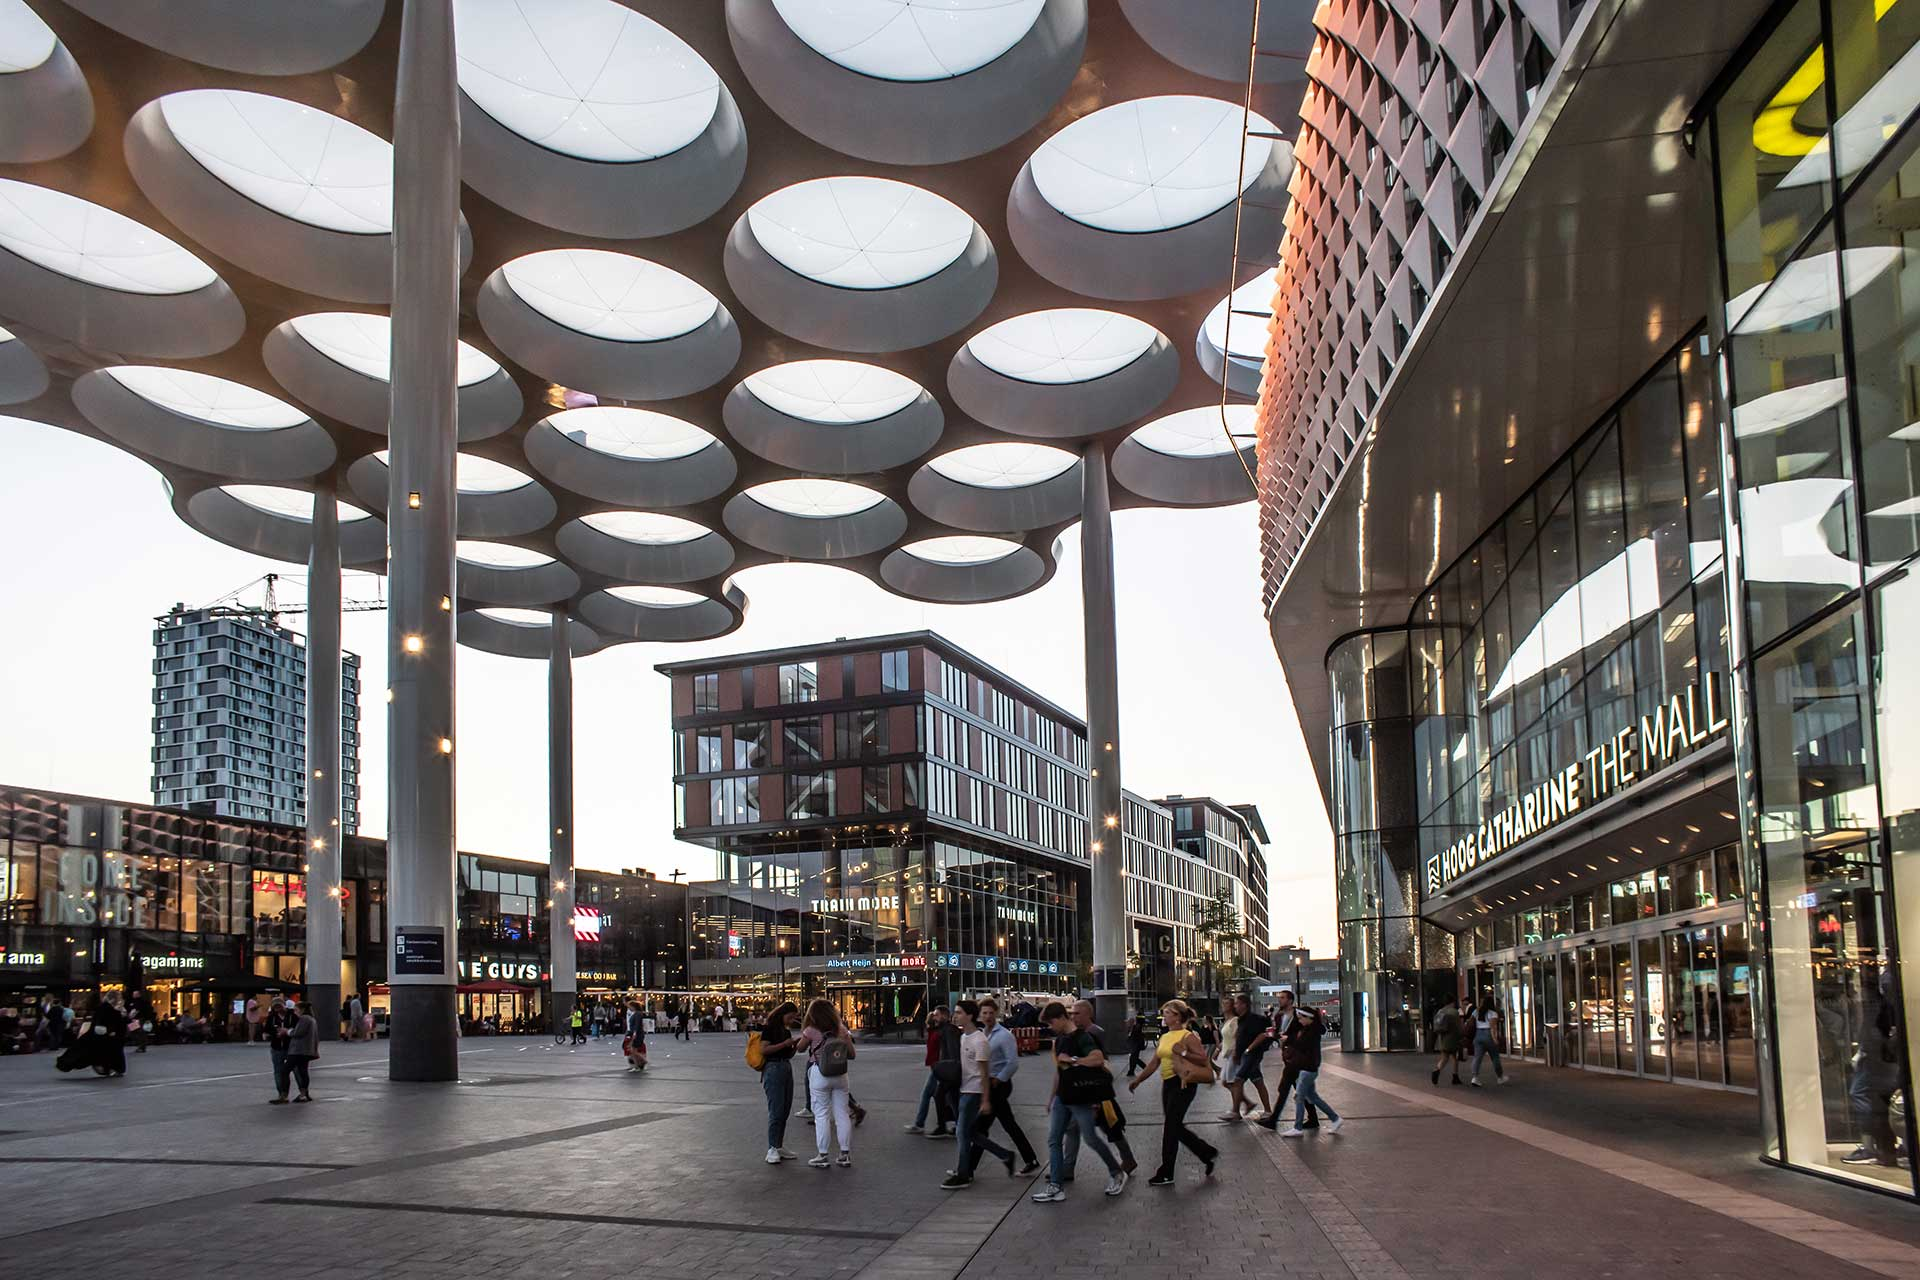 Customised luminaires turn this striking architectural feature into an attraction of its own to the delight of passengers at Utrecht Central Station